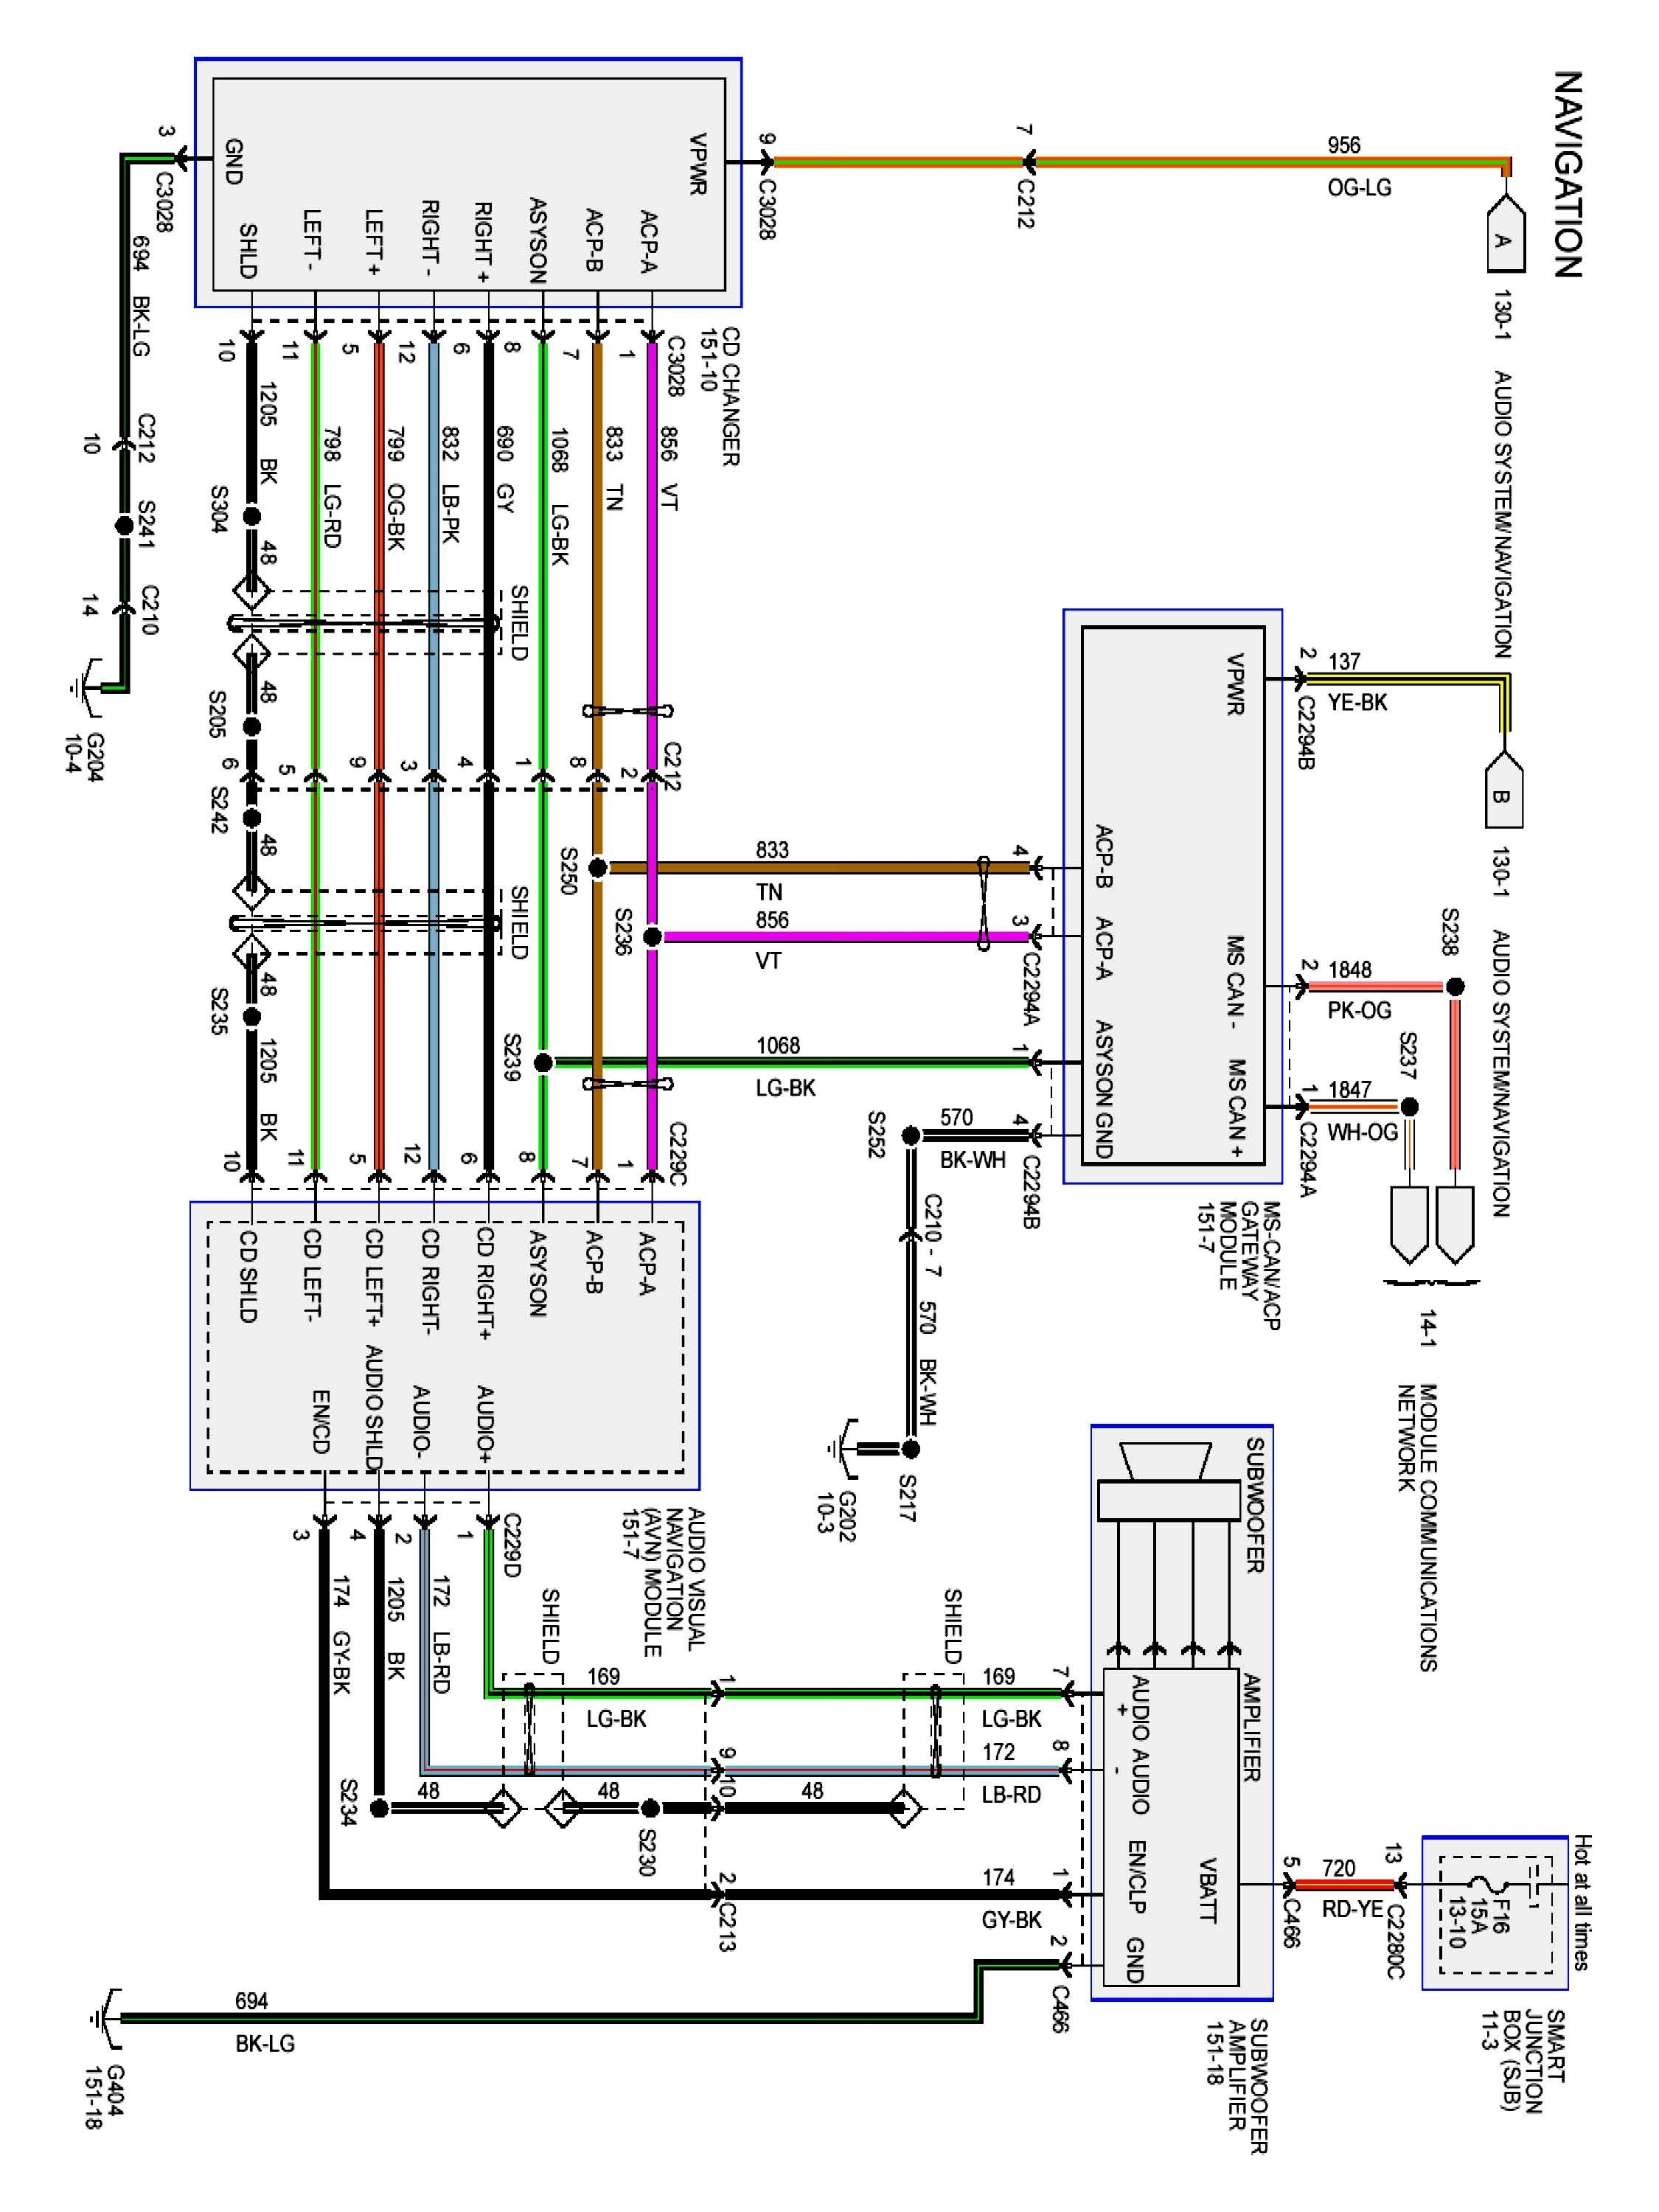 2005 Ford Freestar Radio Wiring Diagram from static-cdn.imageservice.cloud